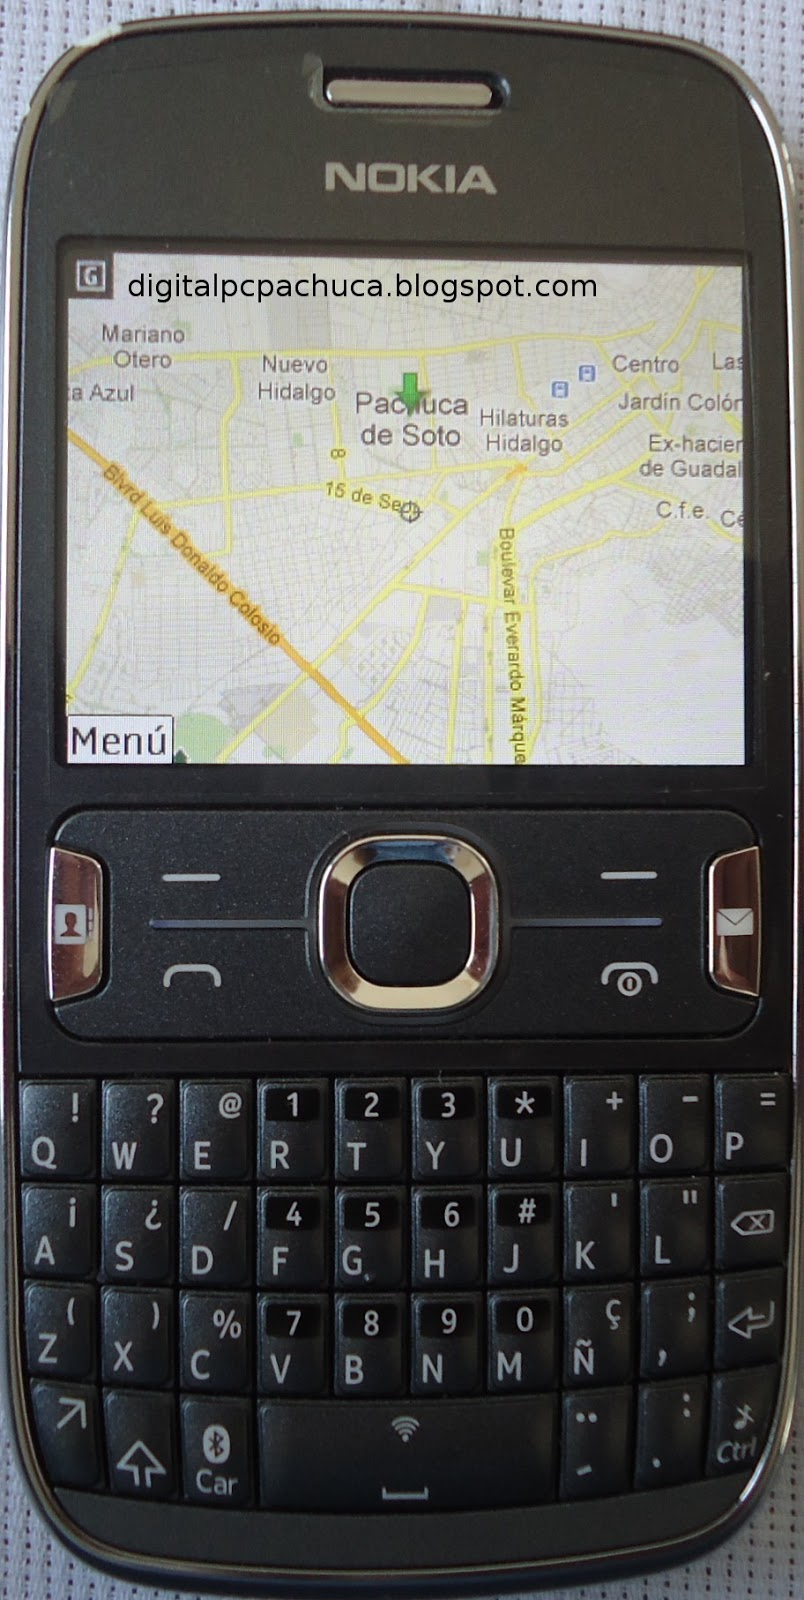 google maps for nokia asha phones